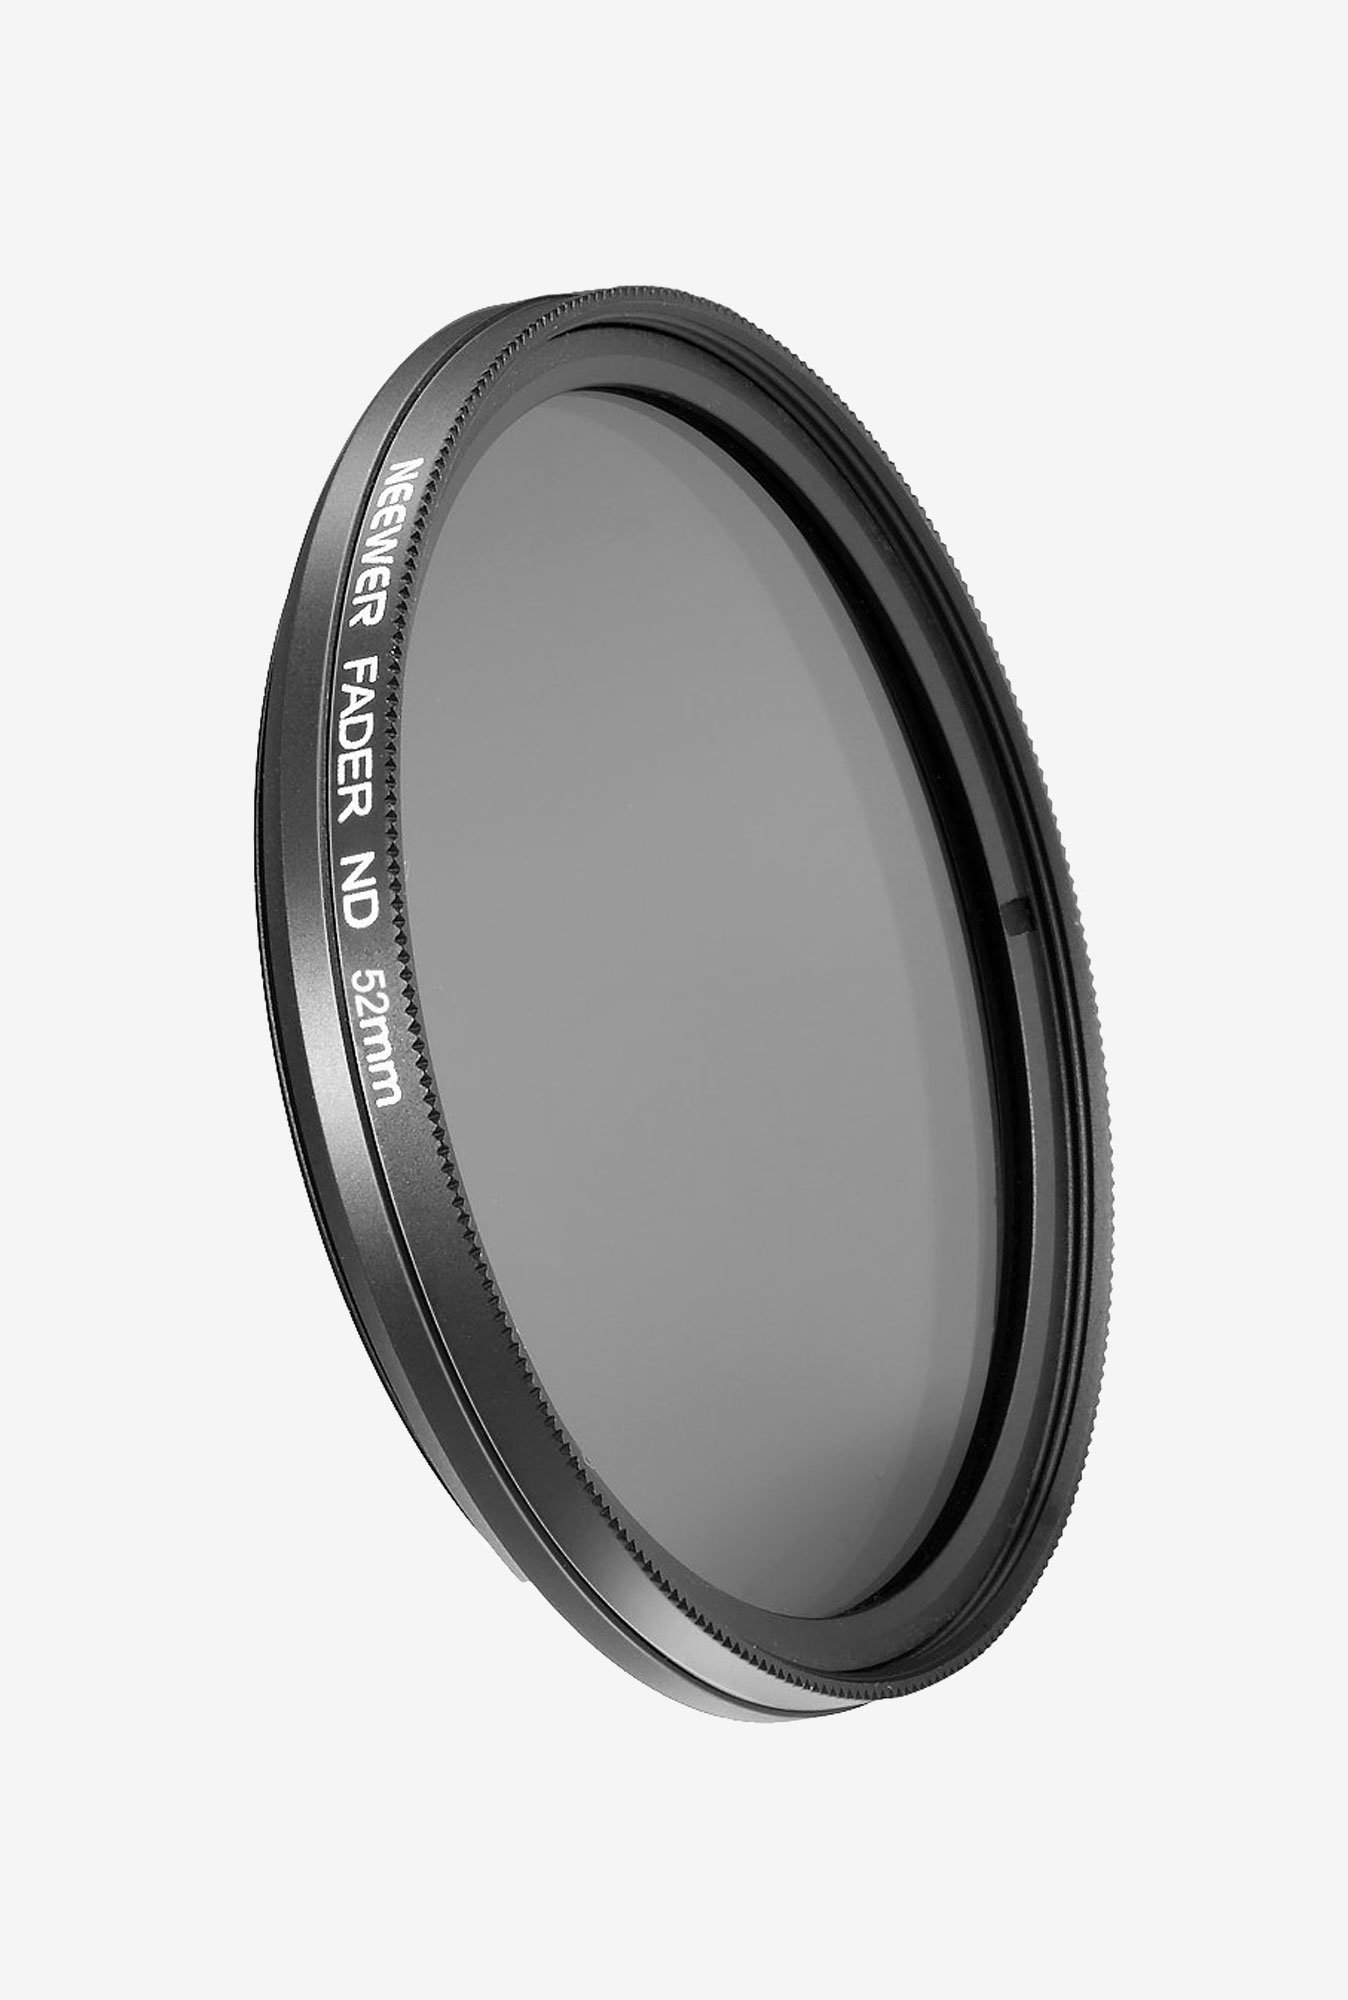 Neewer 72mm Variable Neutral Density Filter ND2 - ND400